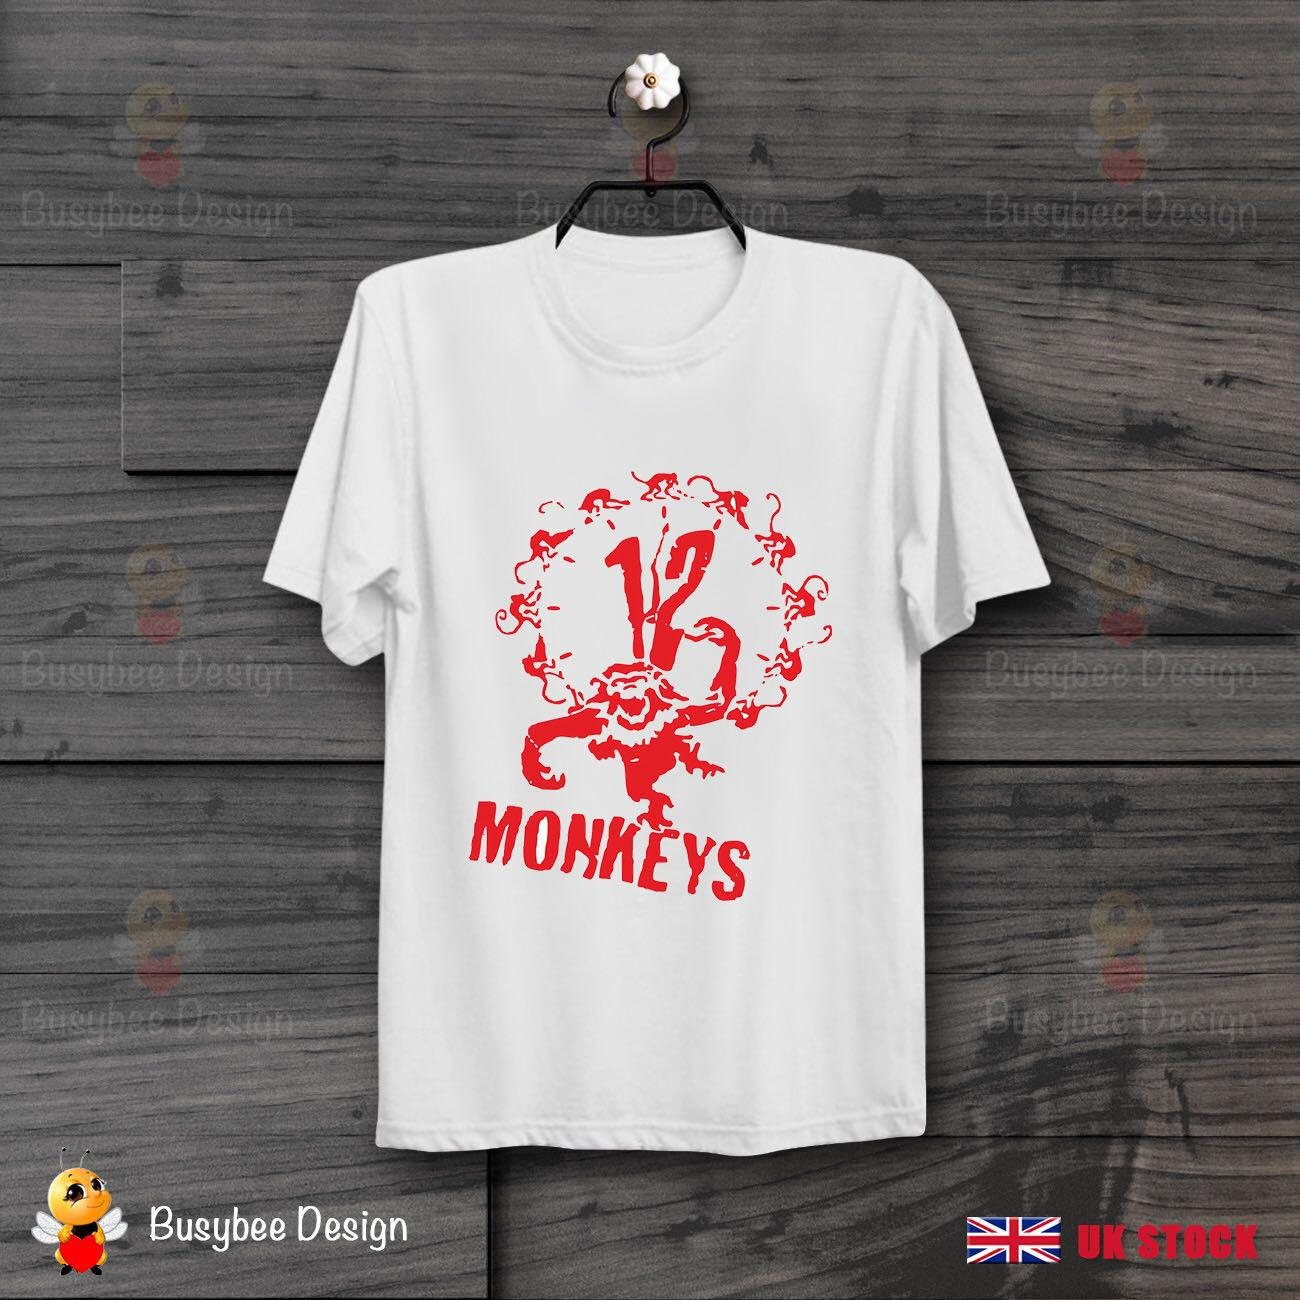 Army of 12 monkeys 90s film graffiti retro cool hipster unisex t shirt b191funny unisex casual tshirt top shirt design tees from teeaddict 12 96 dhgate